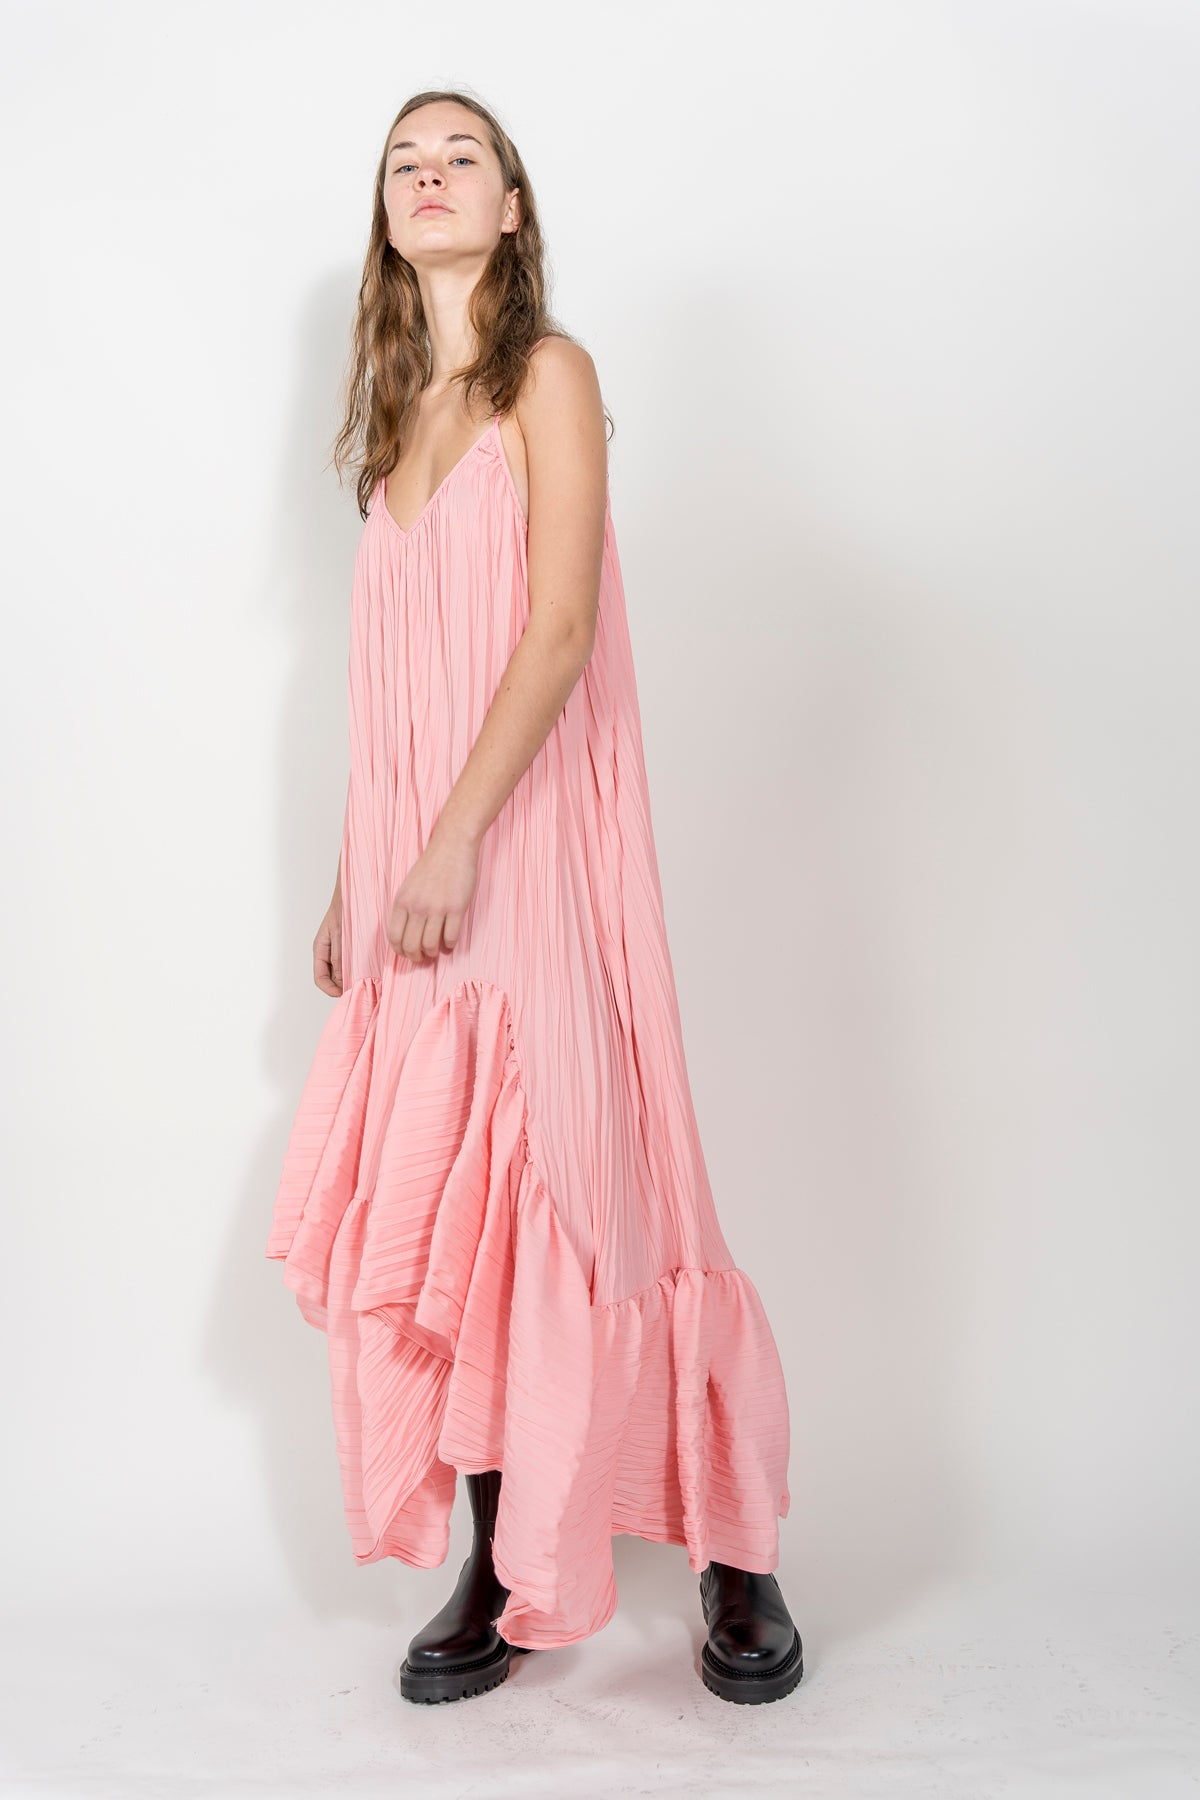 PINK V-NECK PLISSE DRESS marques almeida